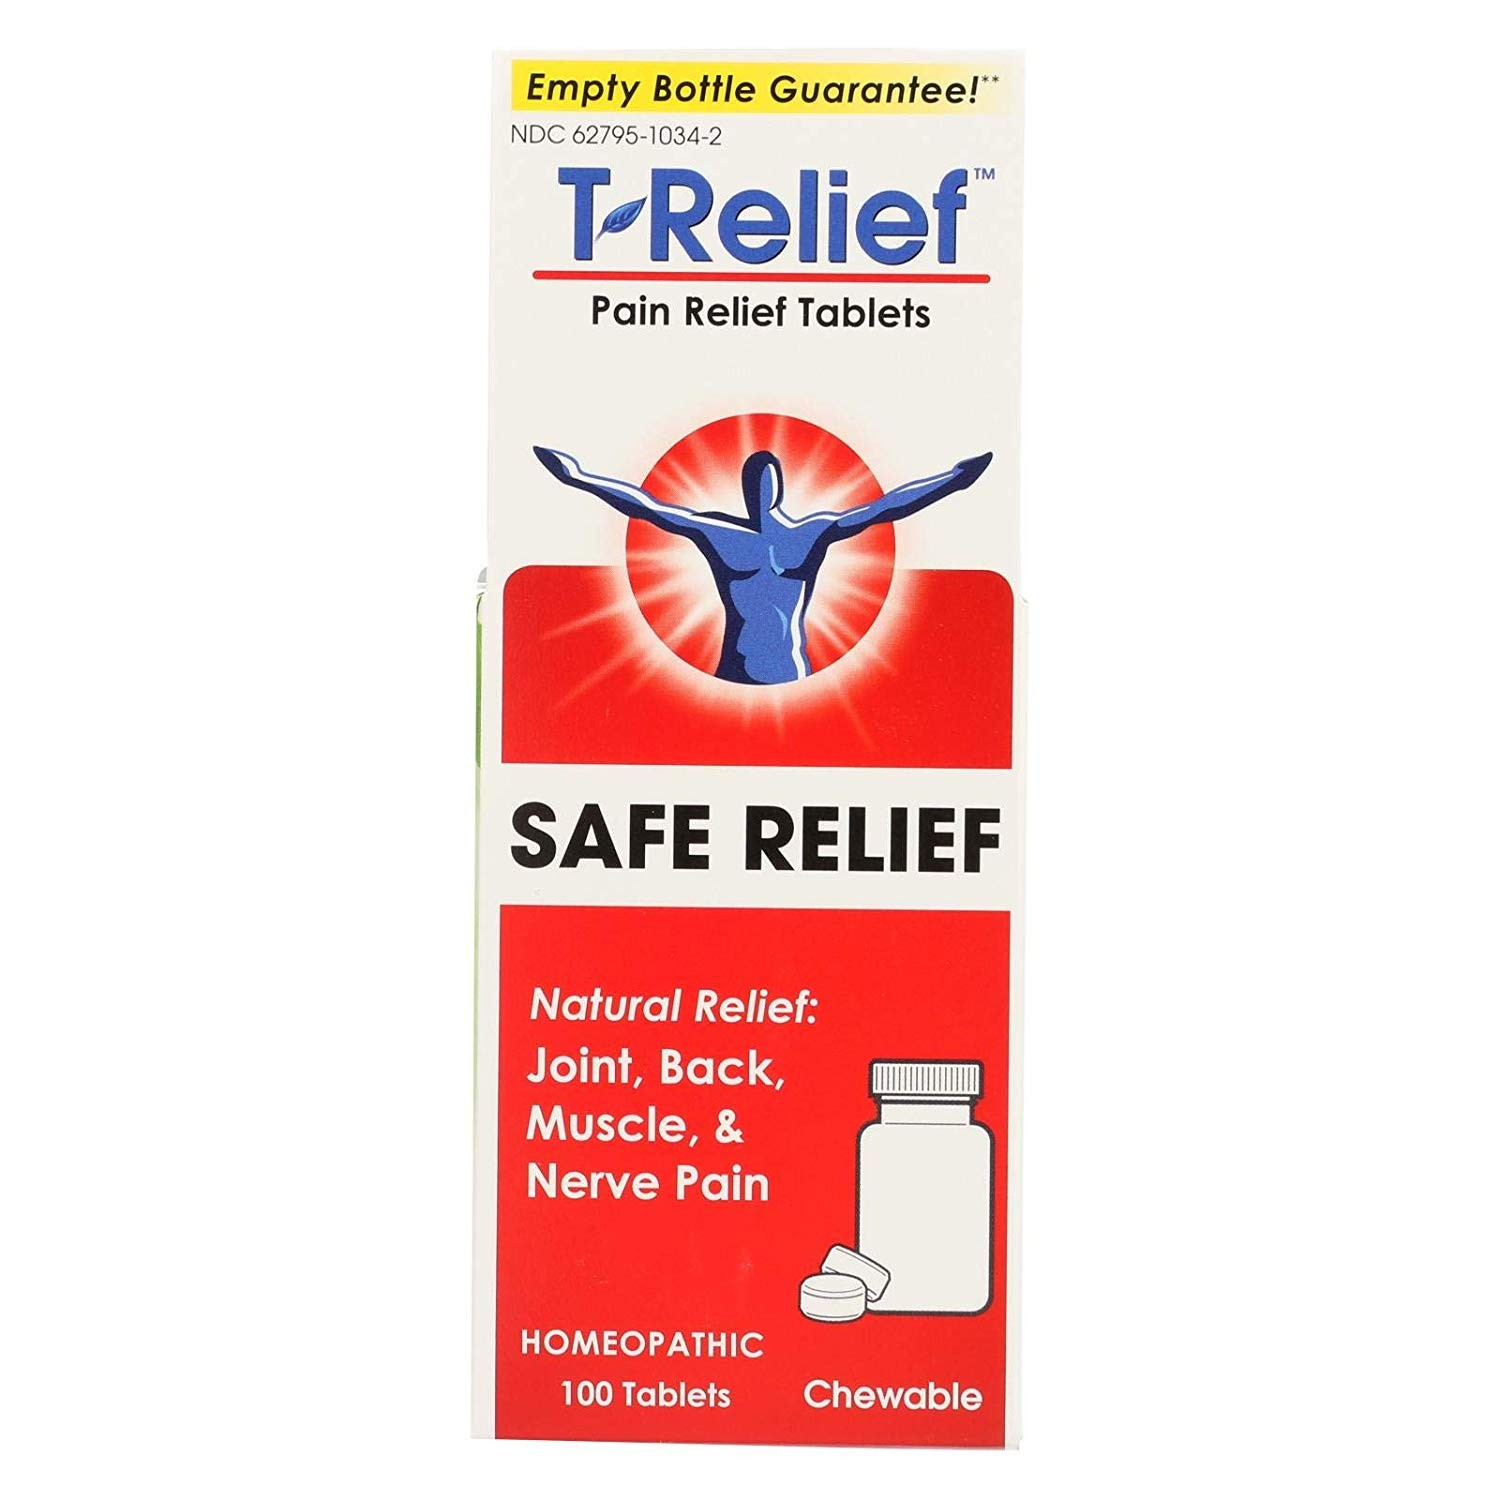 T-Relief (Traumeel) 100 tablets (Pack of 2)